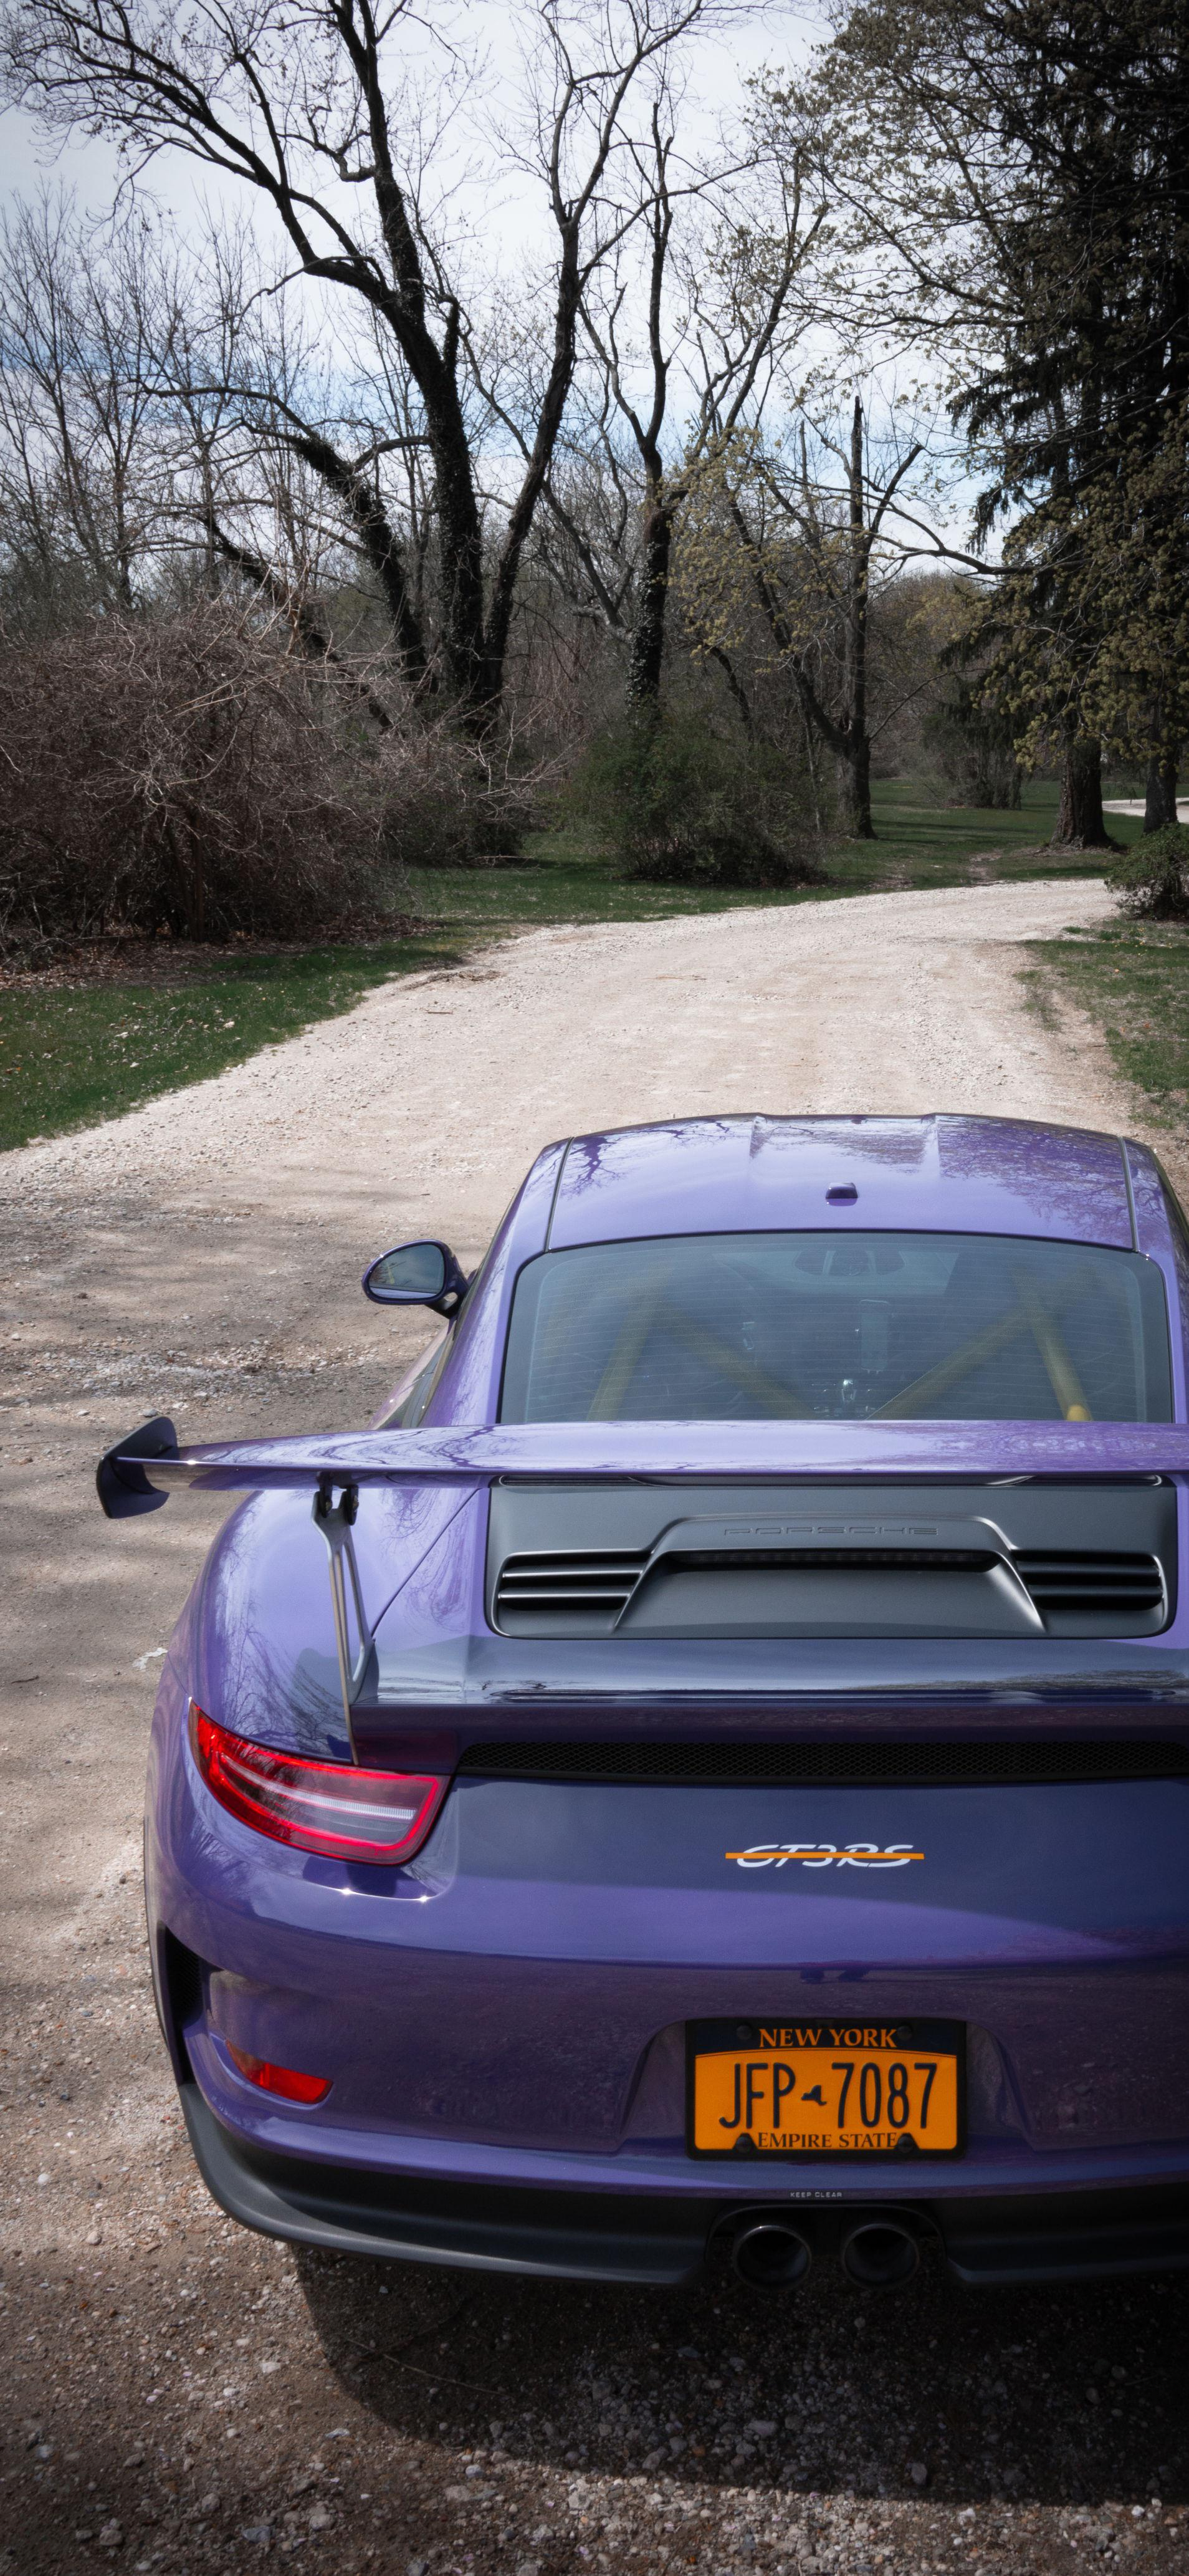 Porsche Wallpapers Posted By John Simpson